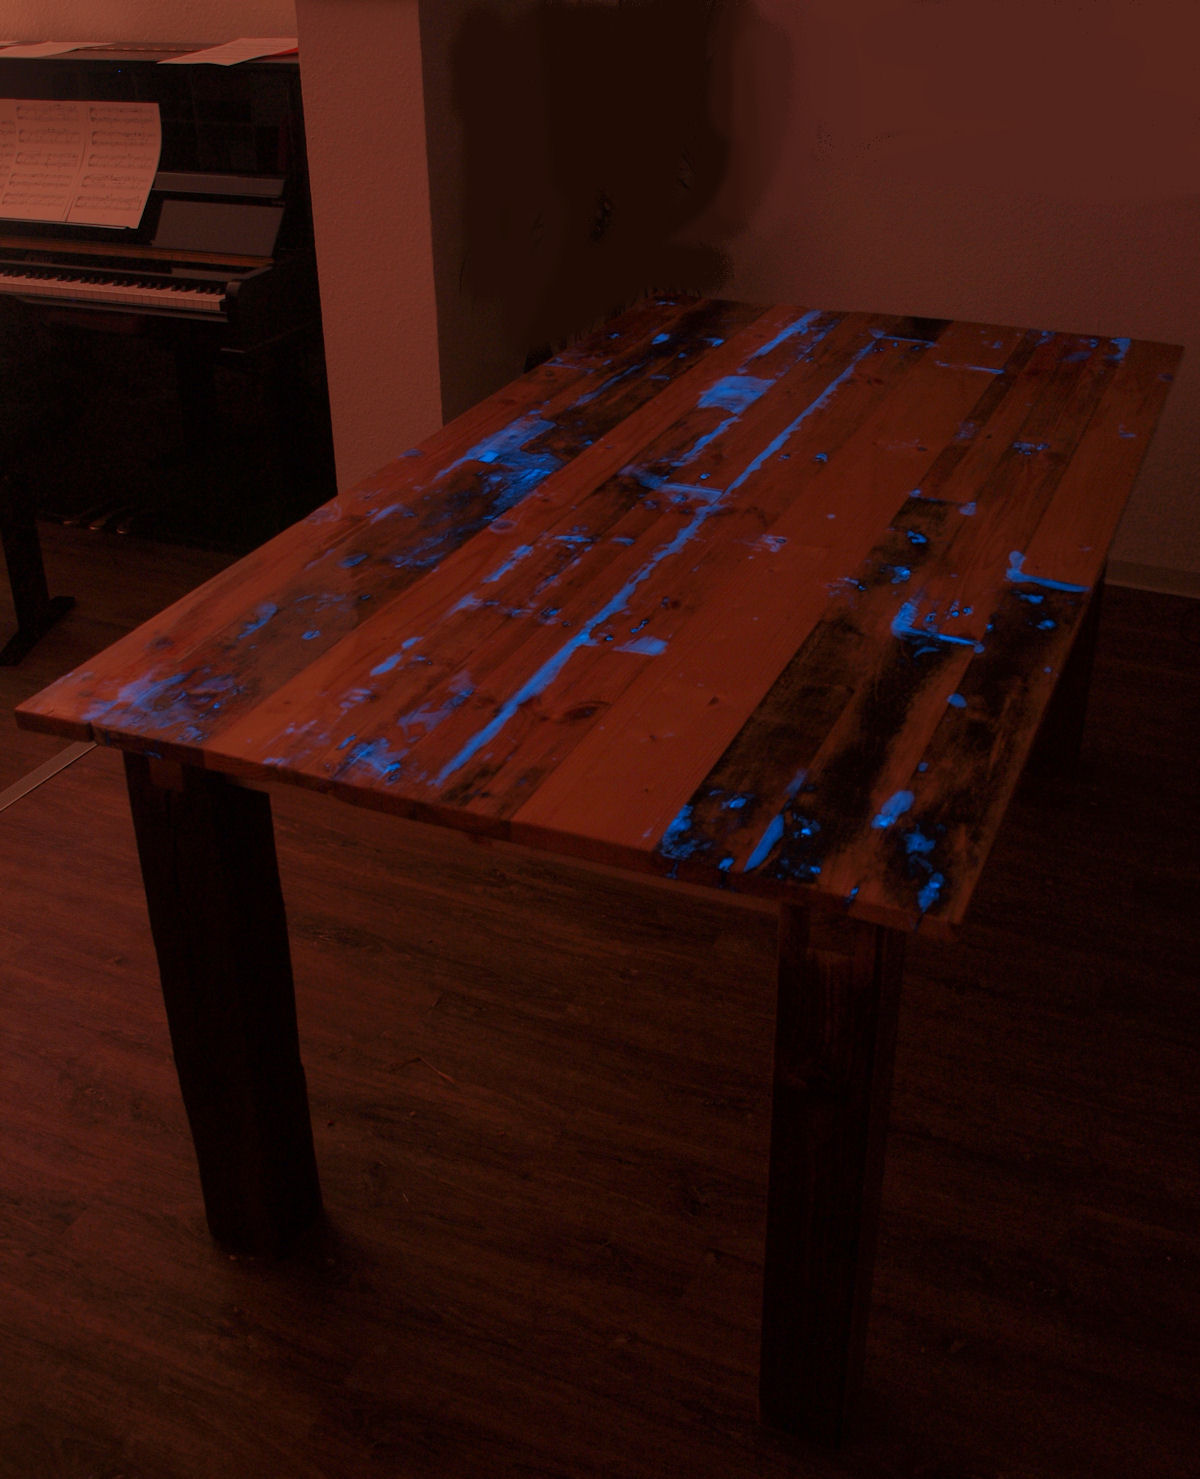 Glow in the Dark Table